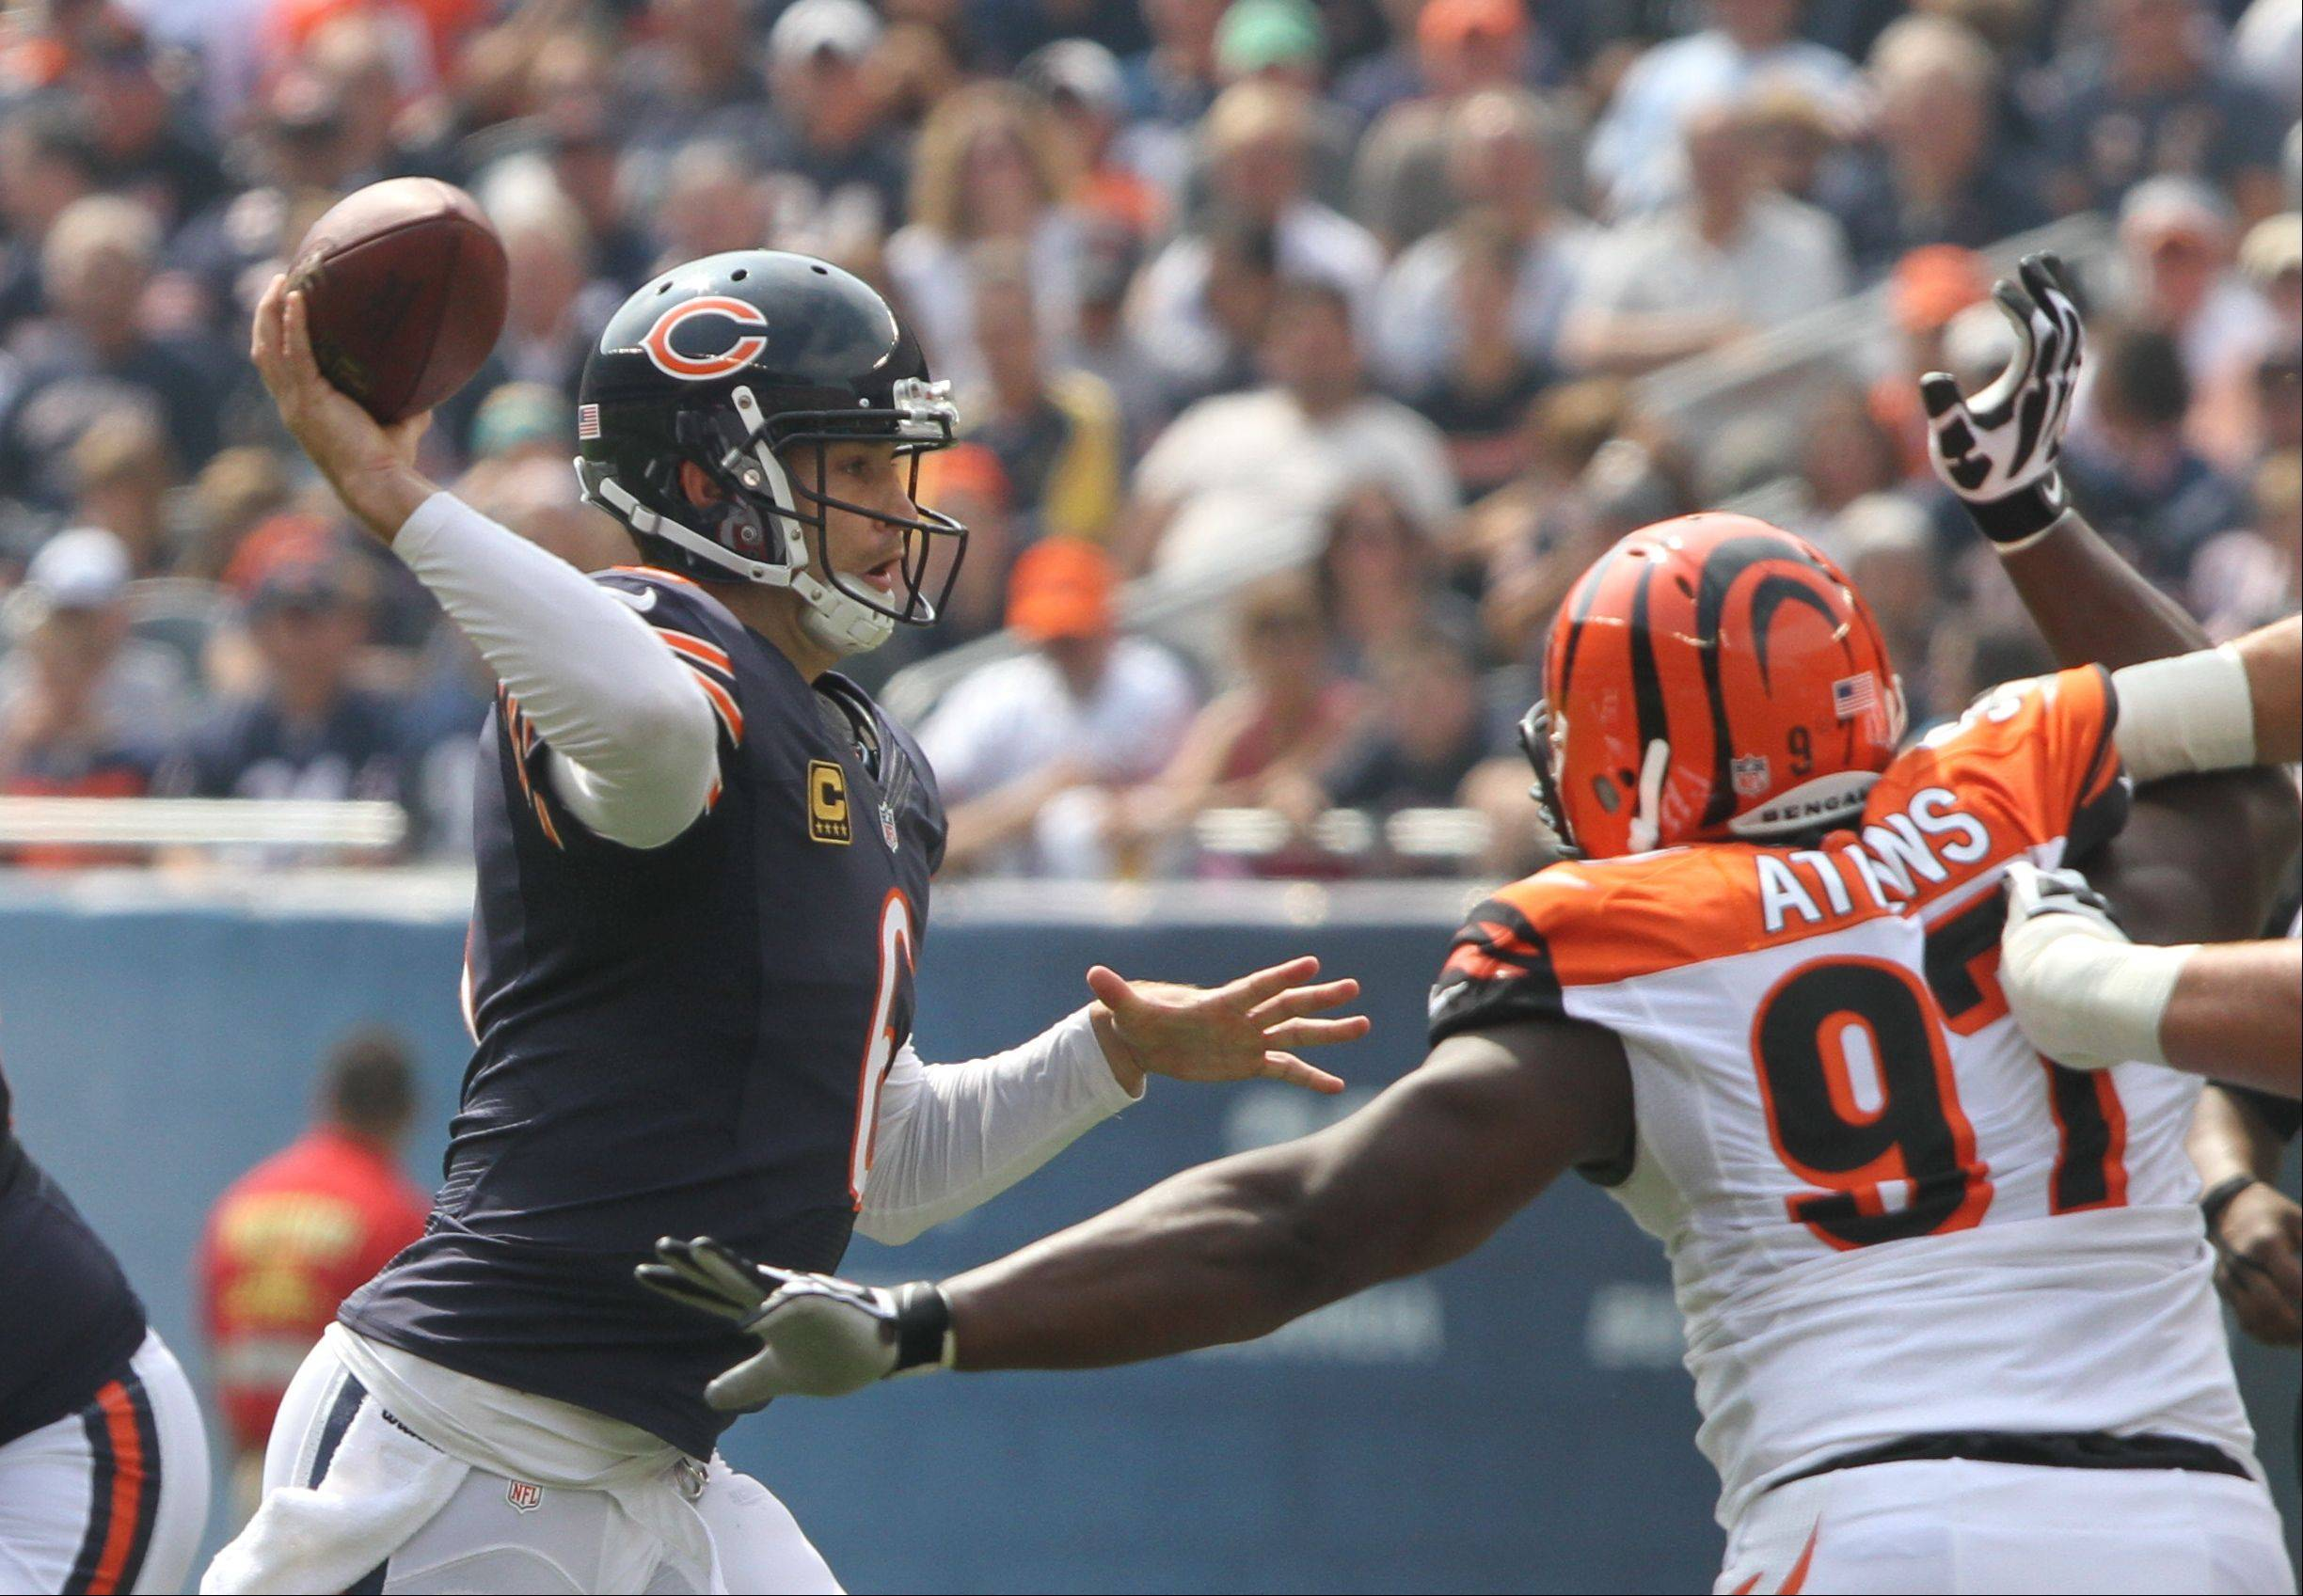 Bears' Cutler faces Vikings' Allen yet again